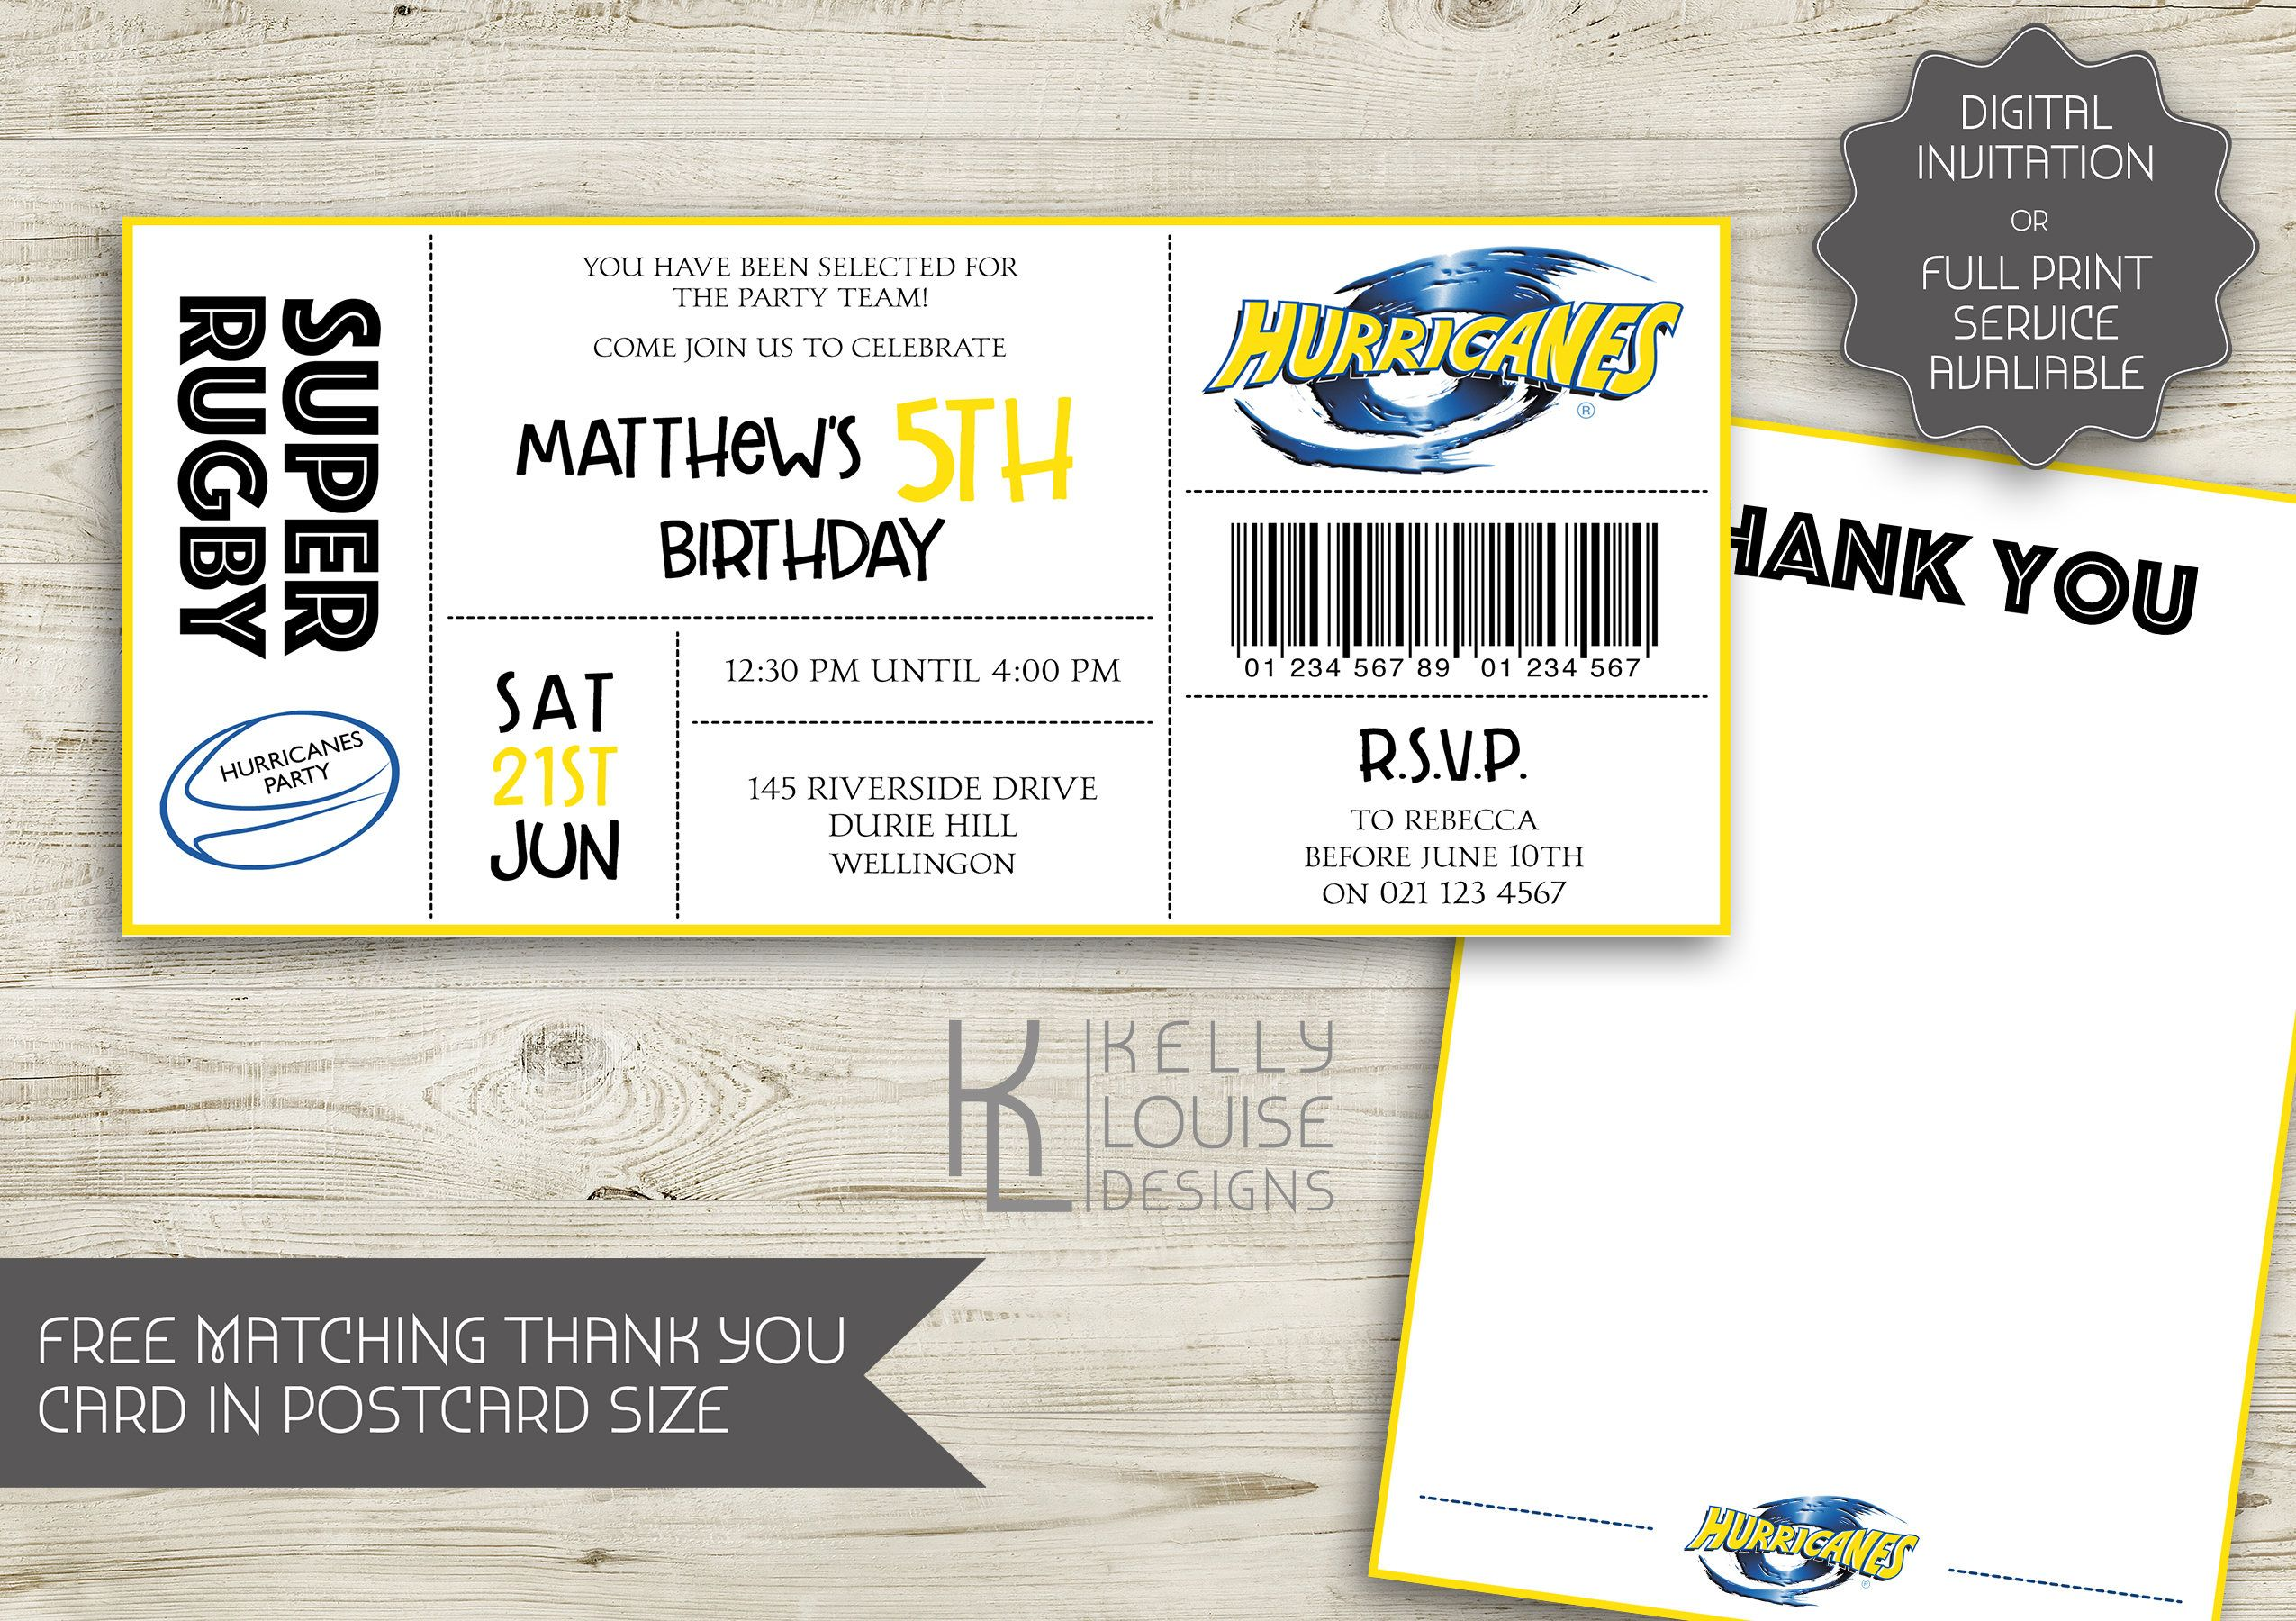 Hurricanes Birthday Invitation Rugby Birthday Party New - Birthday invitation nz